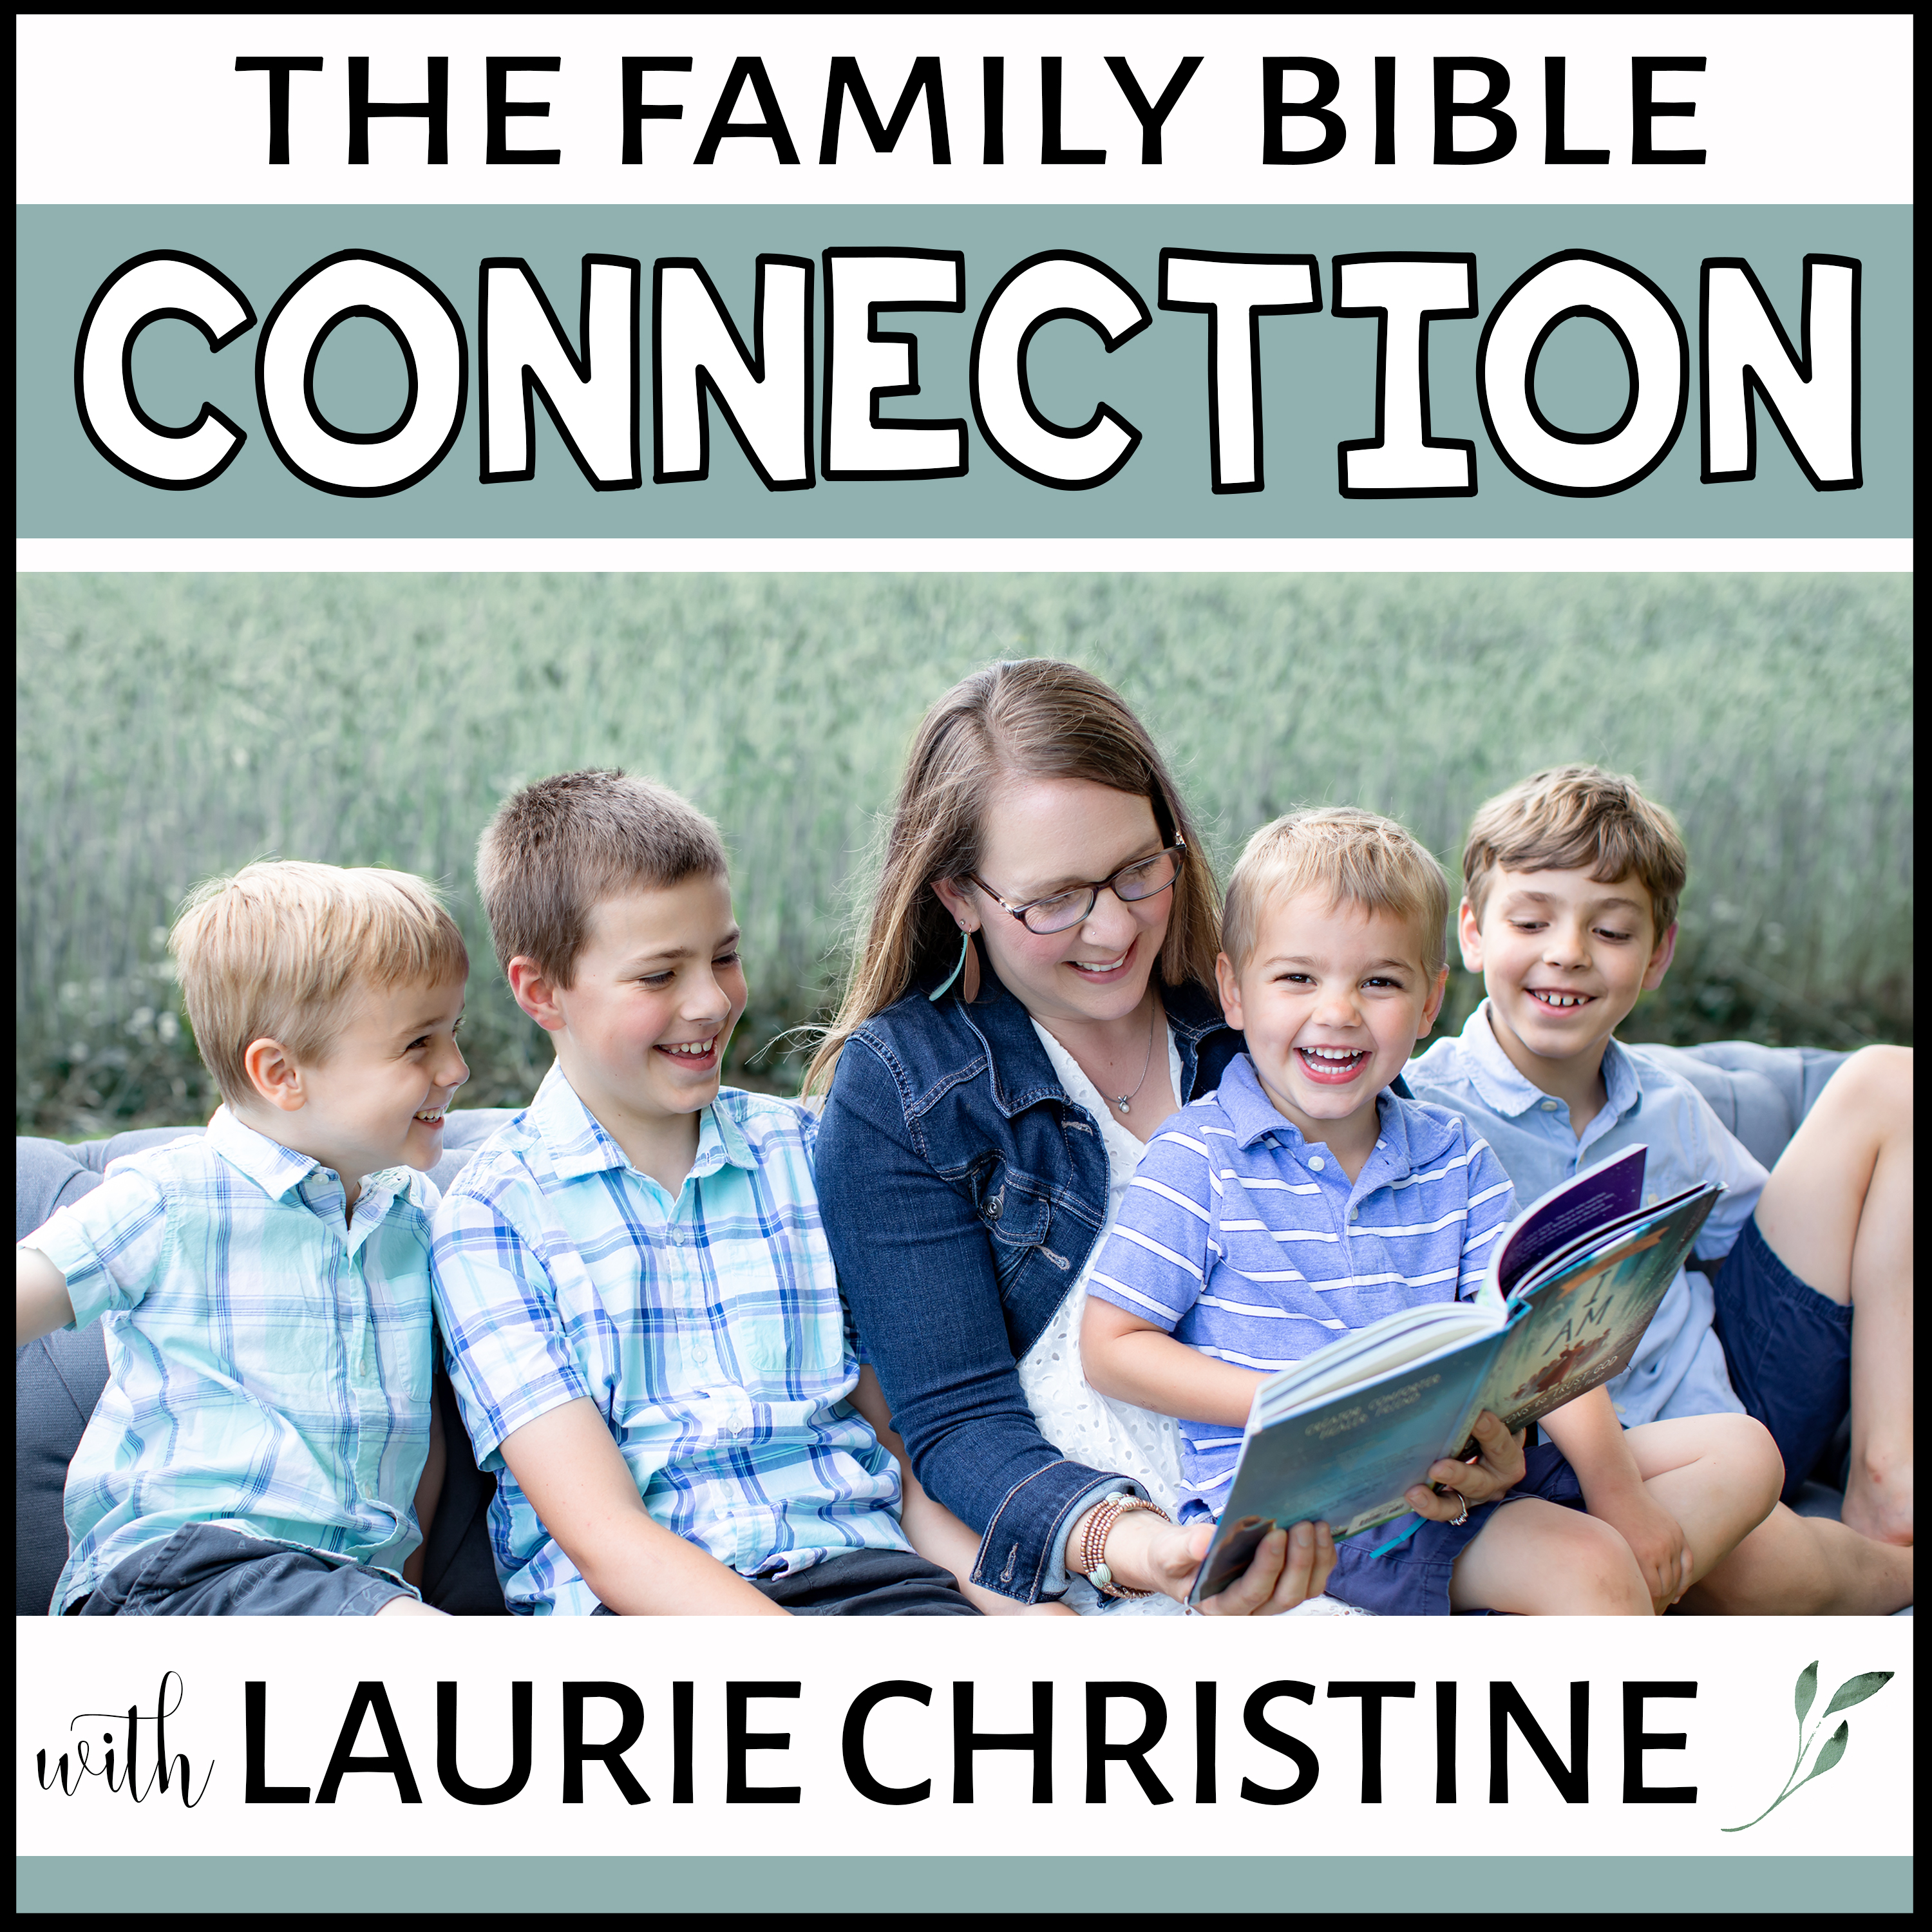 The Family Bible Connection - Bible teaching, devotional resources and family routines for the Christian mom.